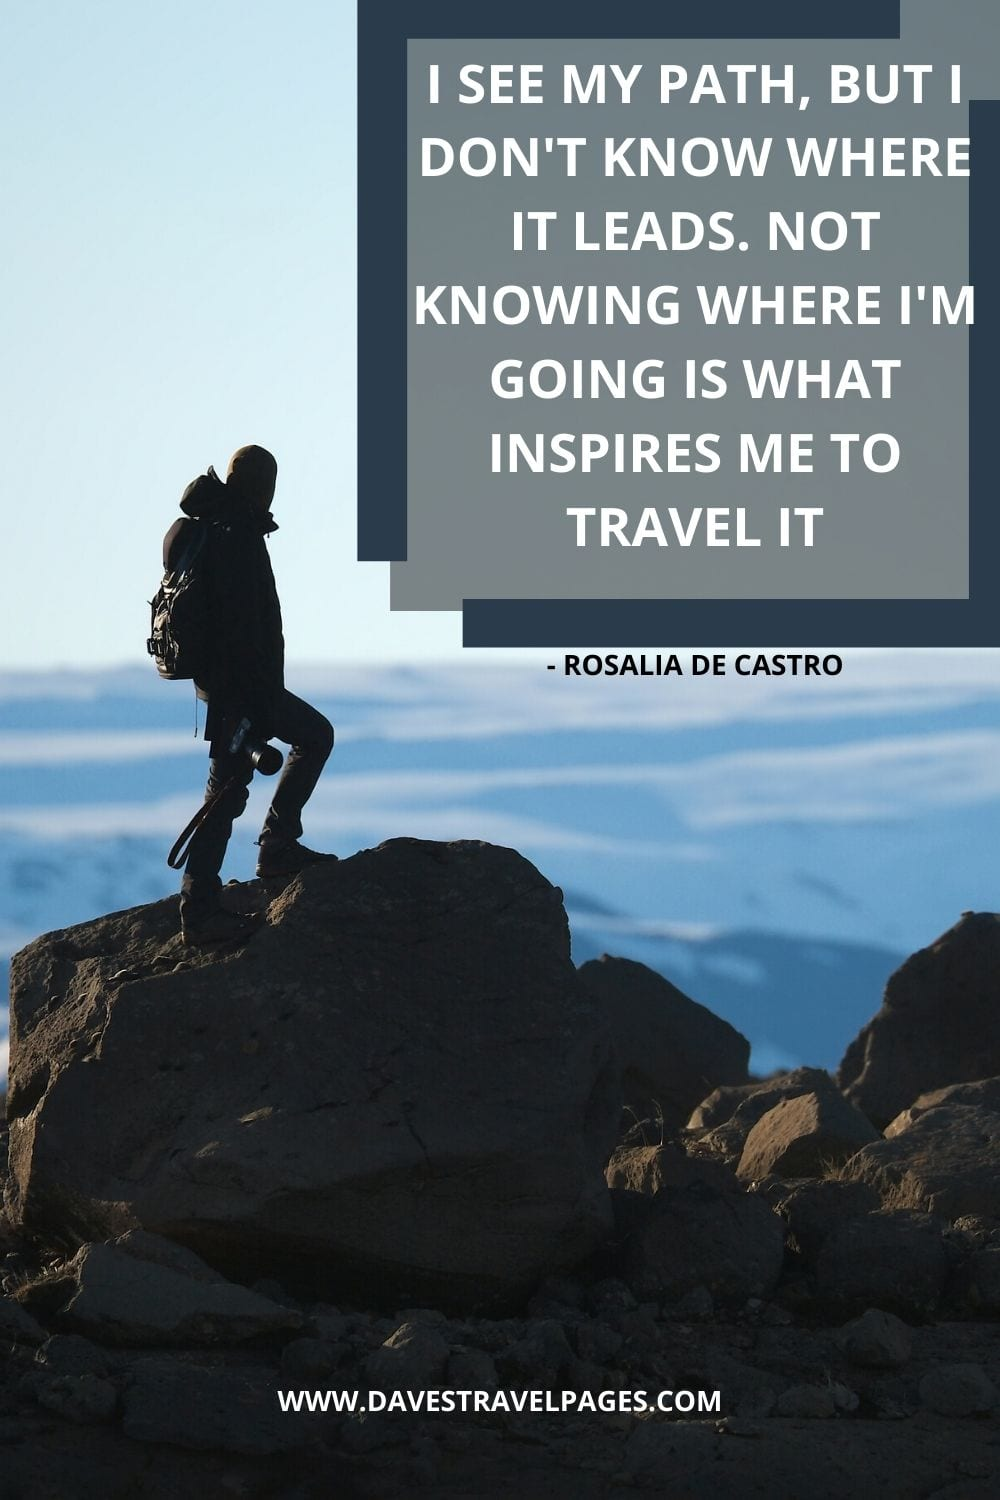 Travel Quotes: I see my path, but I don't know where it leads. Not knowing where I'm going is what inspires me to travel it - Rosalia de Castro